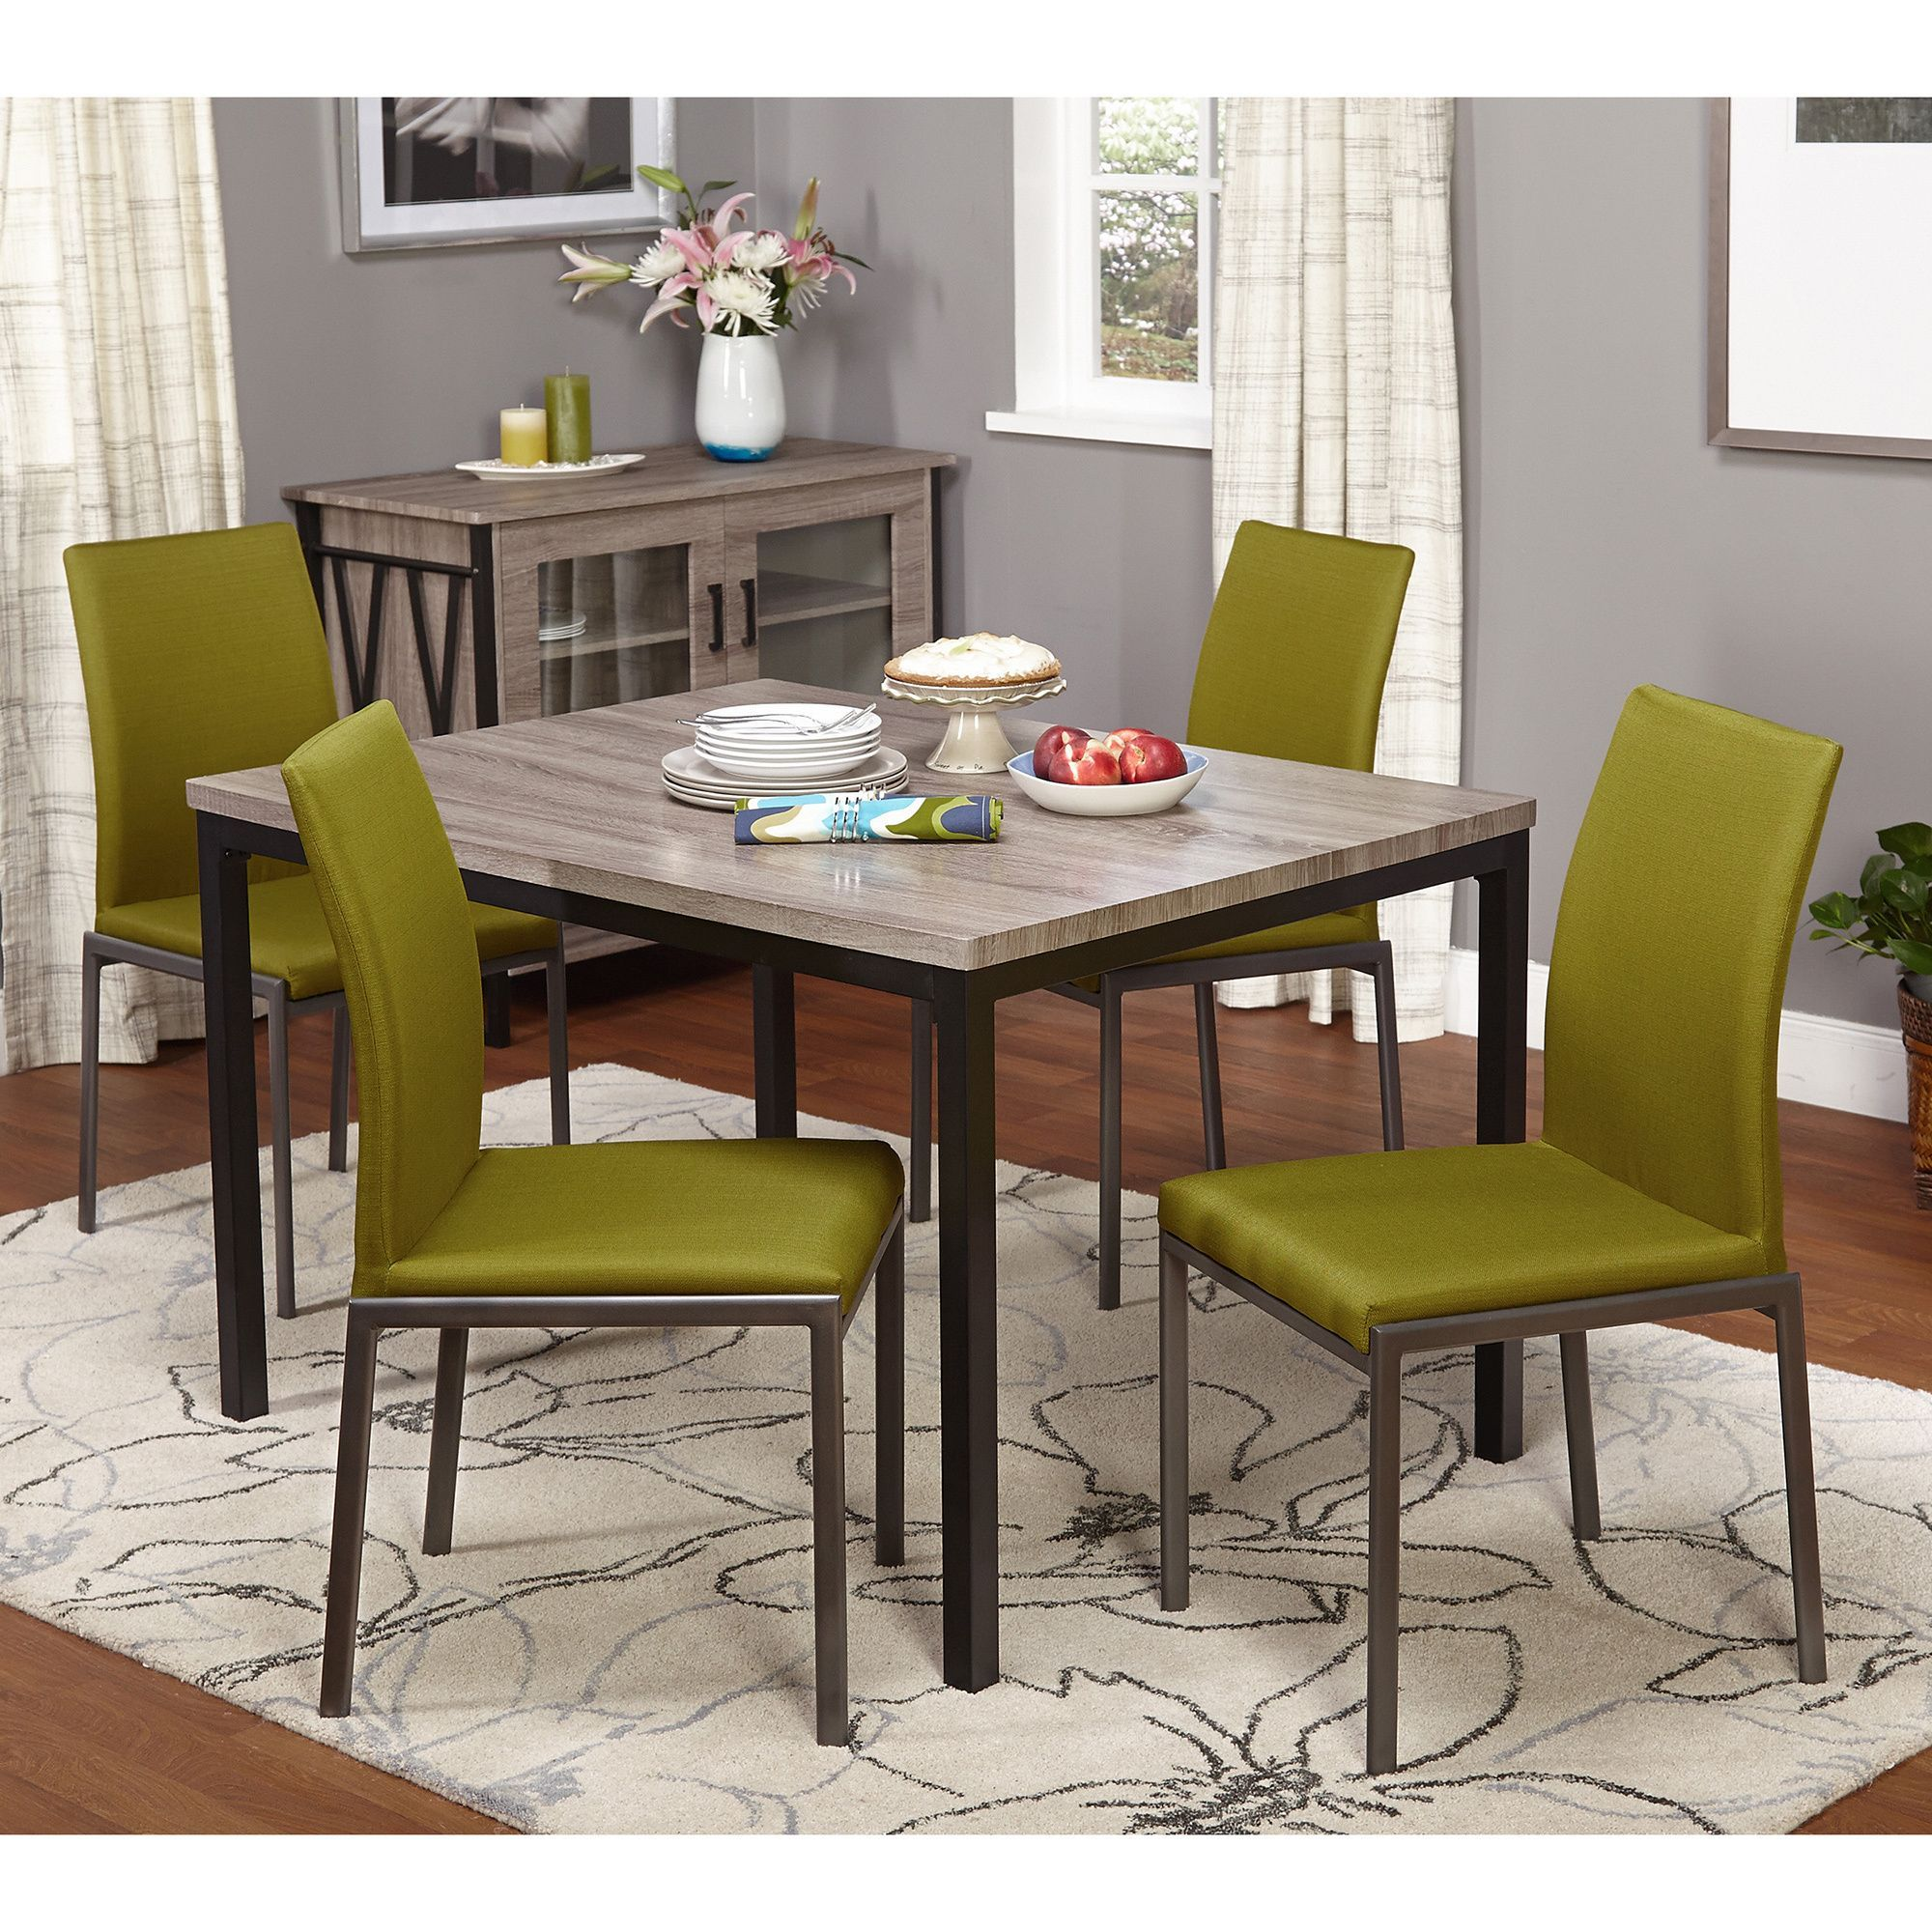 Awesome Simple Living Harrison 5 Piece Dining Set